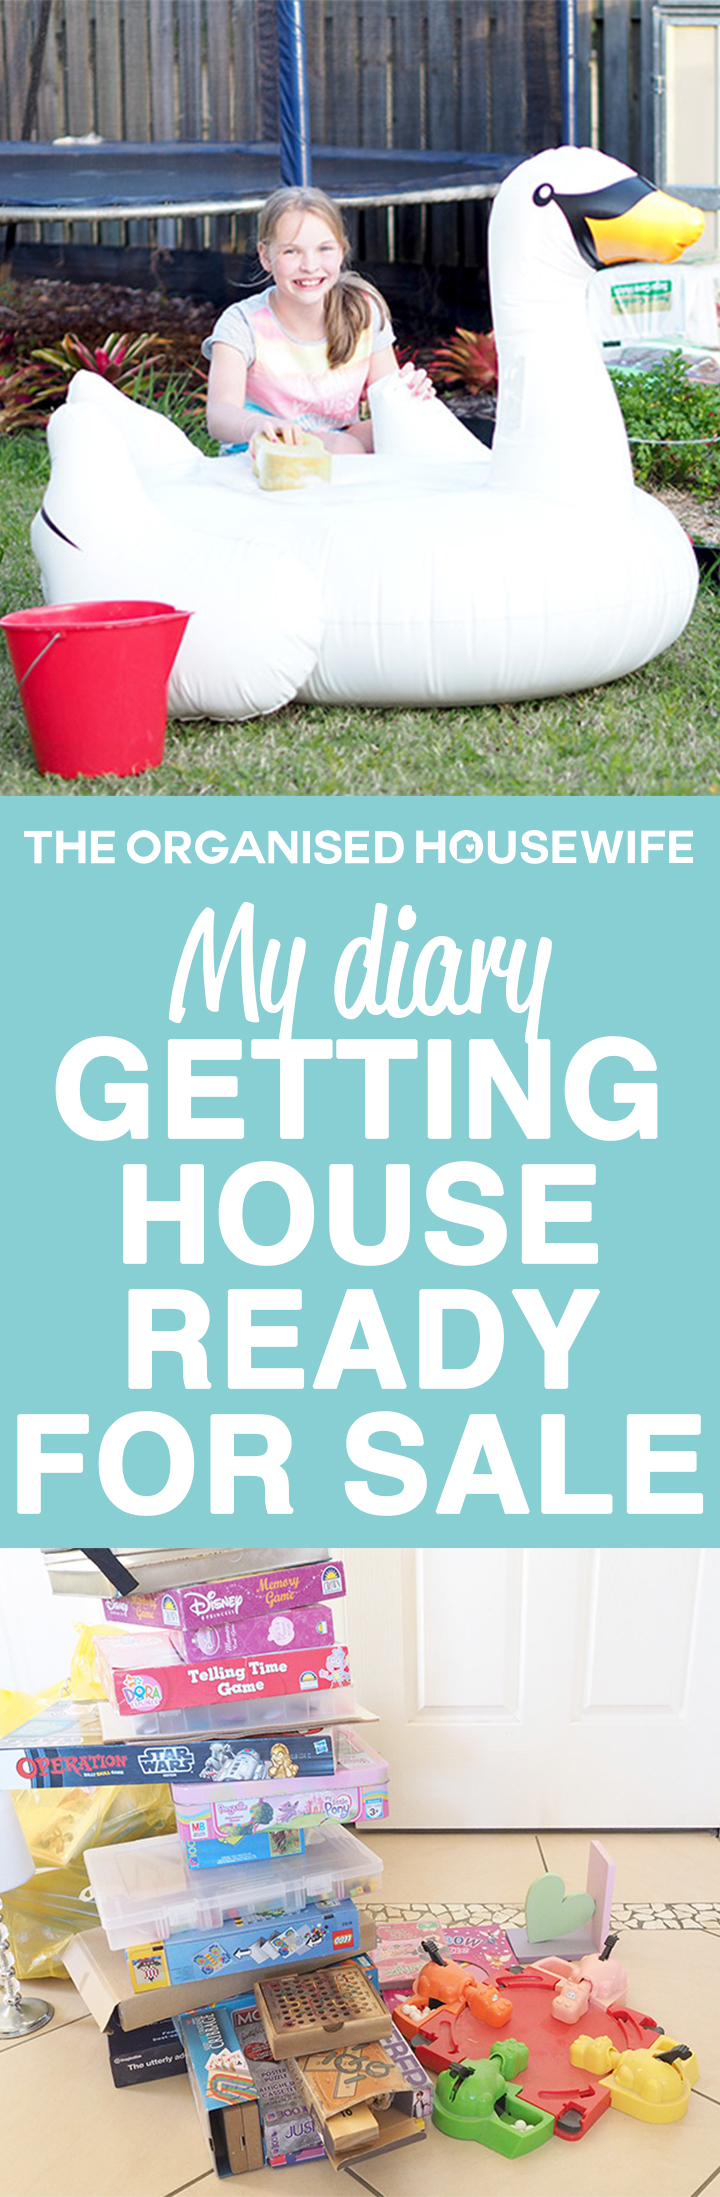 This is my little diary of the time and effort we went to to get our house ready for sale. We managed to get it ready within a week, it was worth it as the house was presented really nicely for potential buyers.